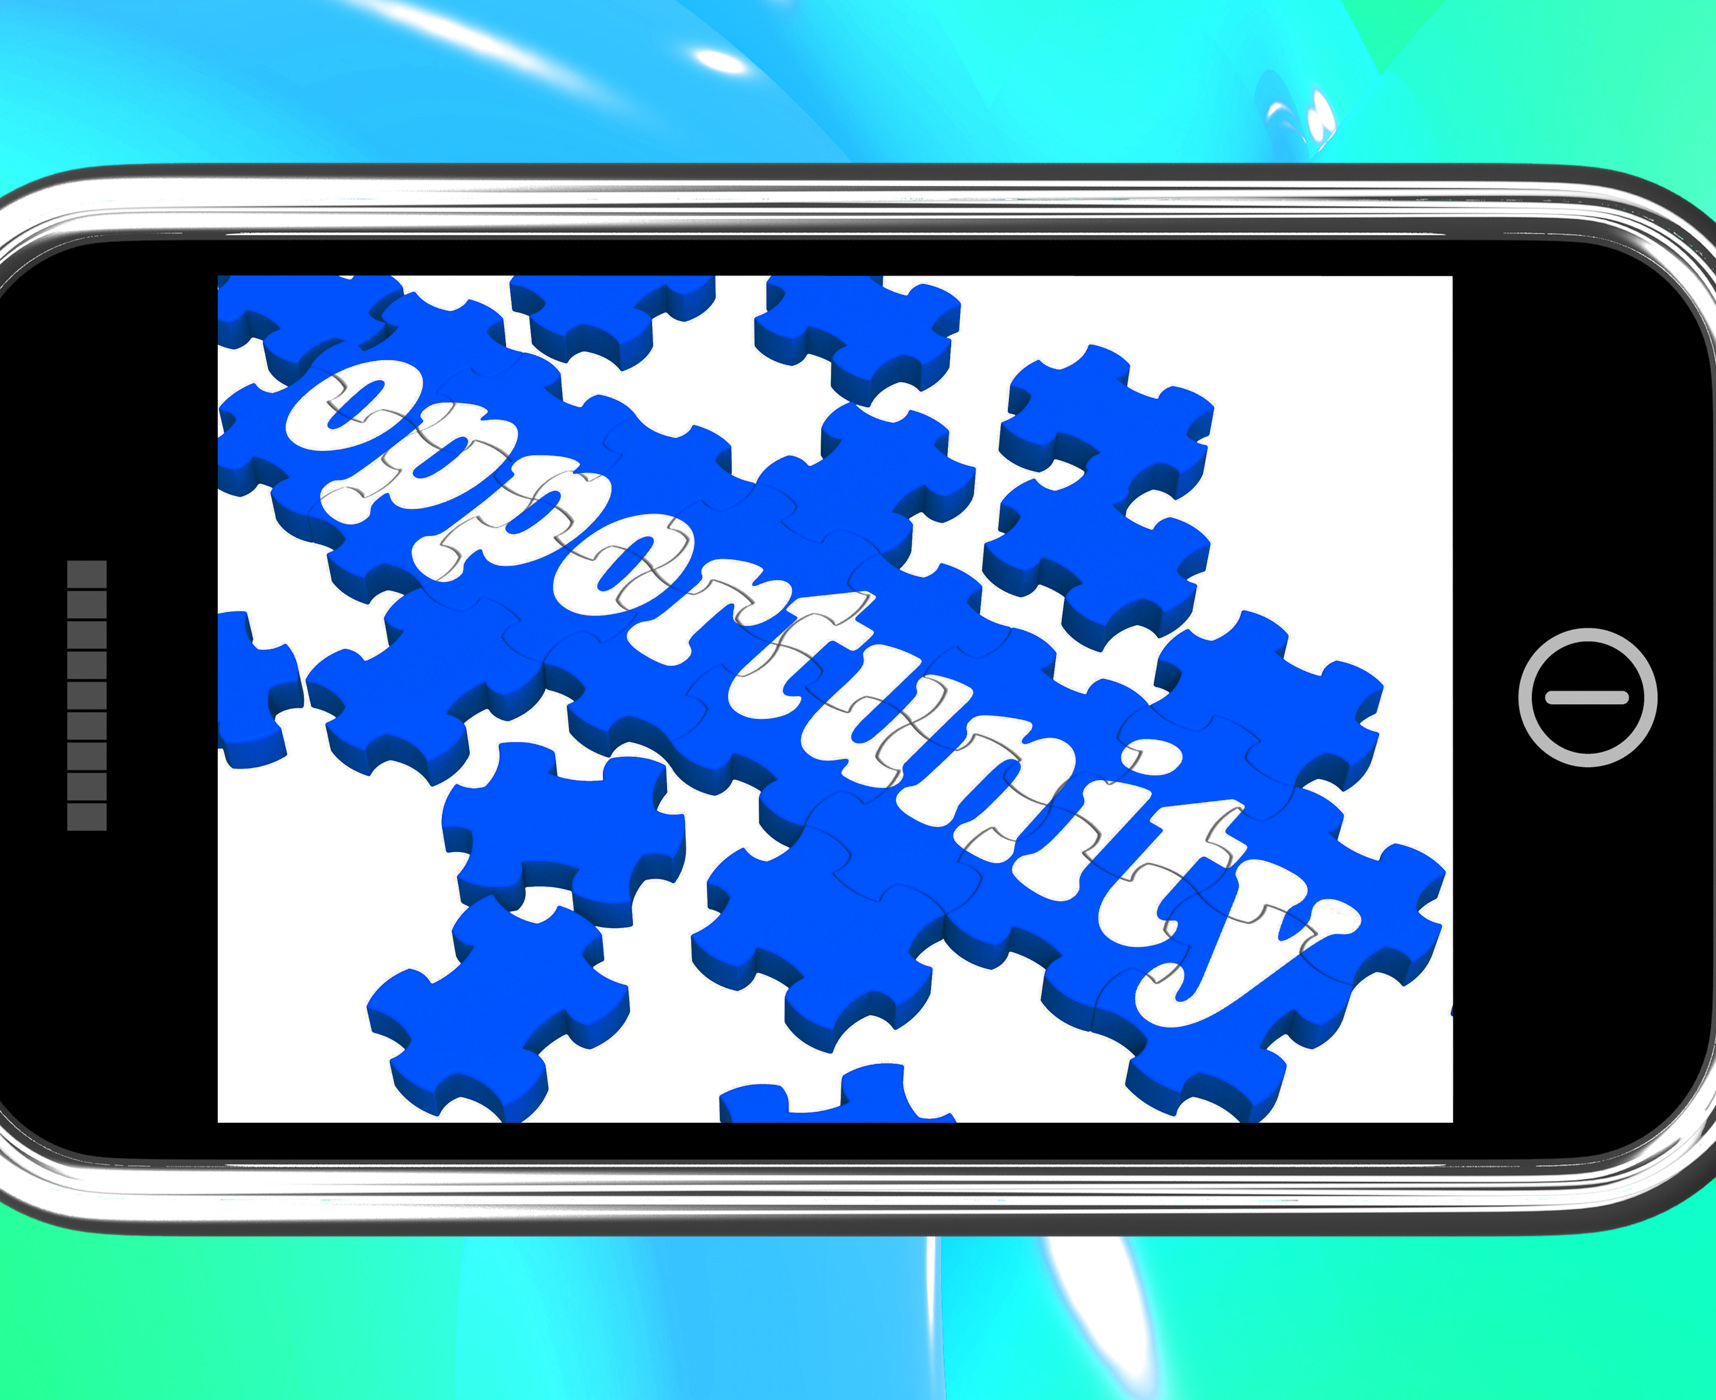 Opportunity on smartphone shows big chances photo